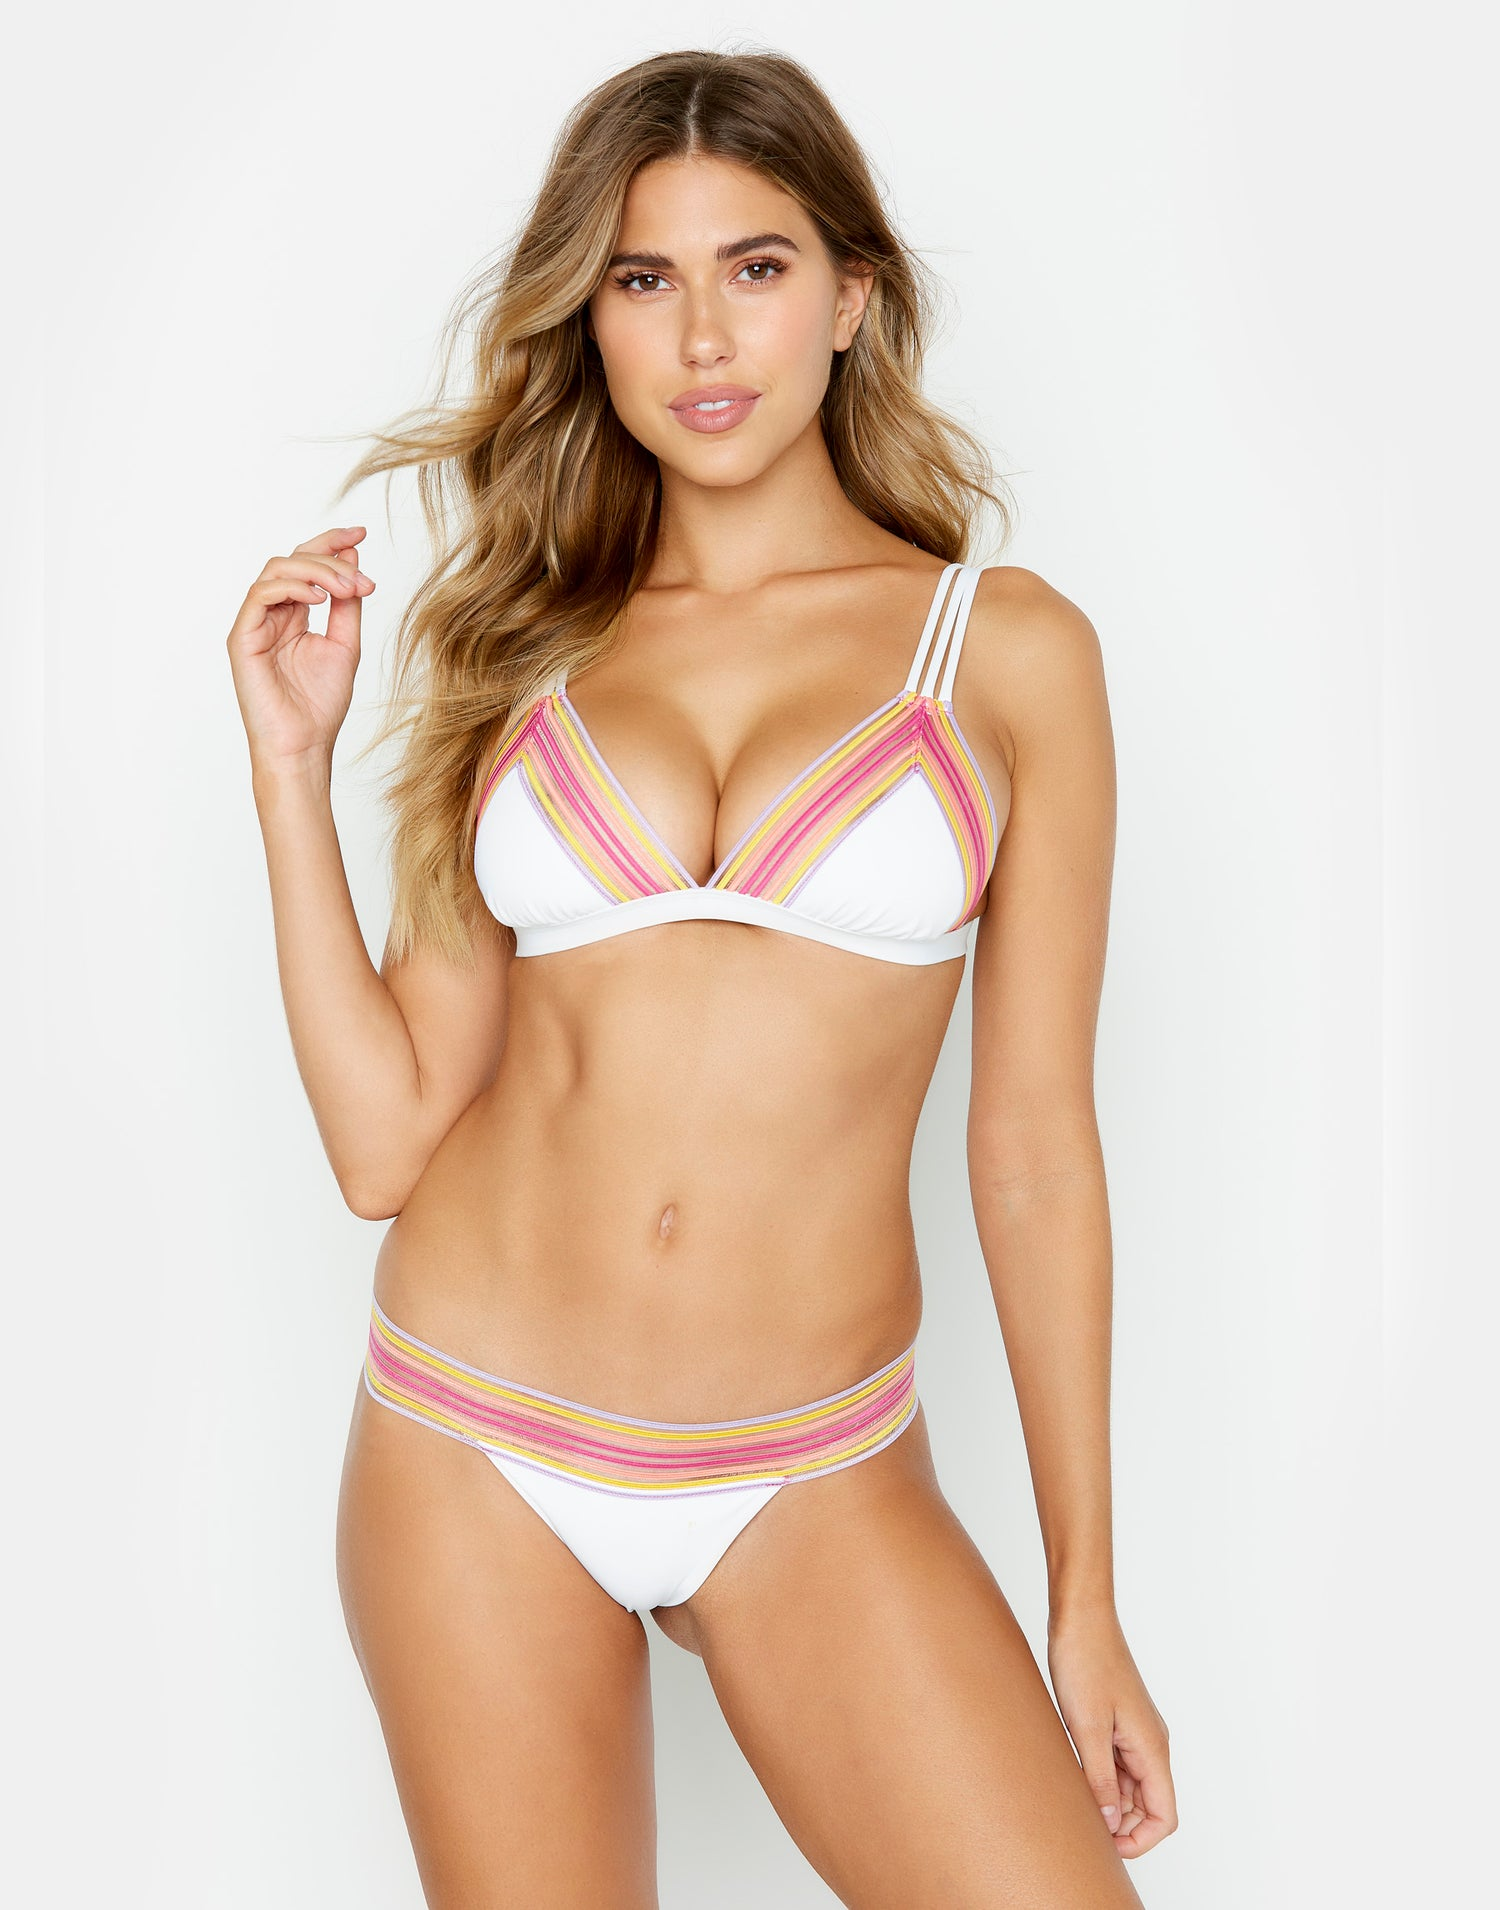 Sheer Addiction Triangle Bikini Top in White with Pink/Yellow and Elastic Stripes - front view